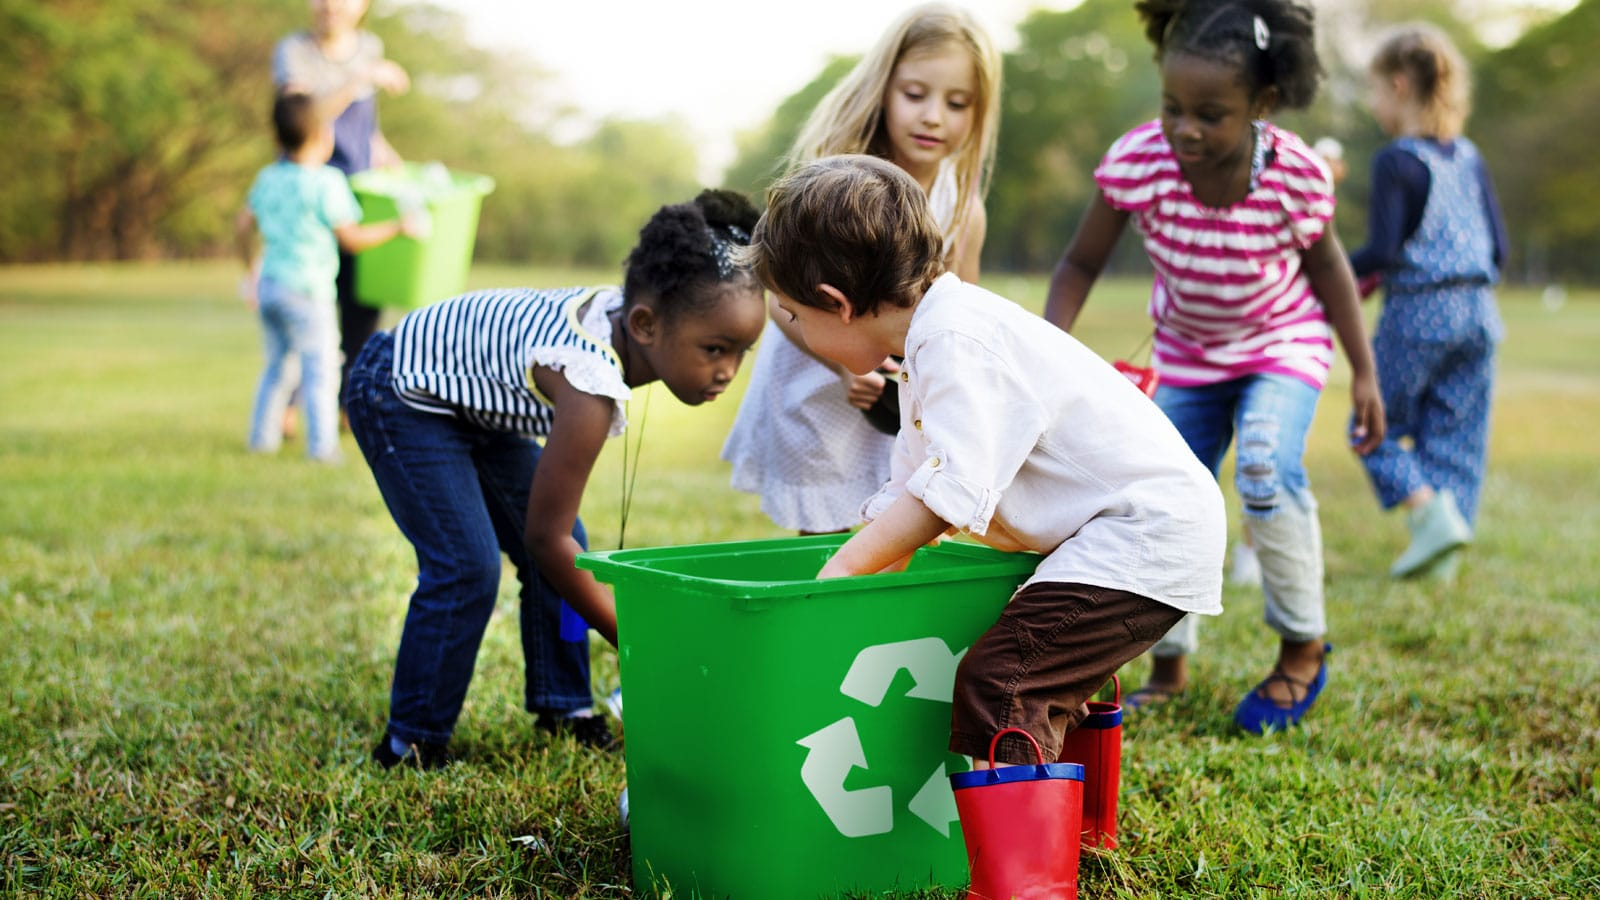 Recyling Tips, Facts and Myths For National Recycle Day